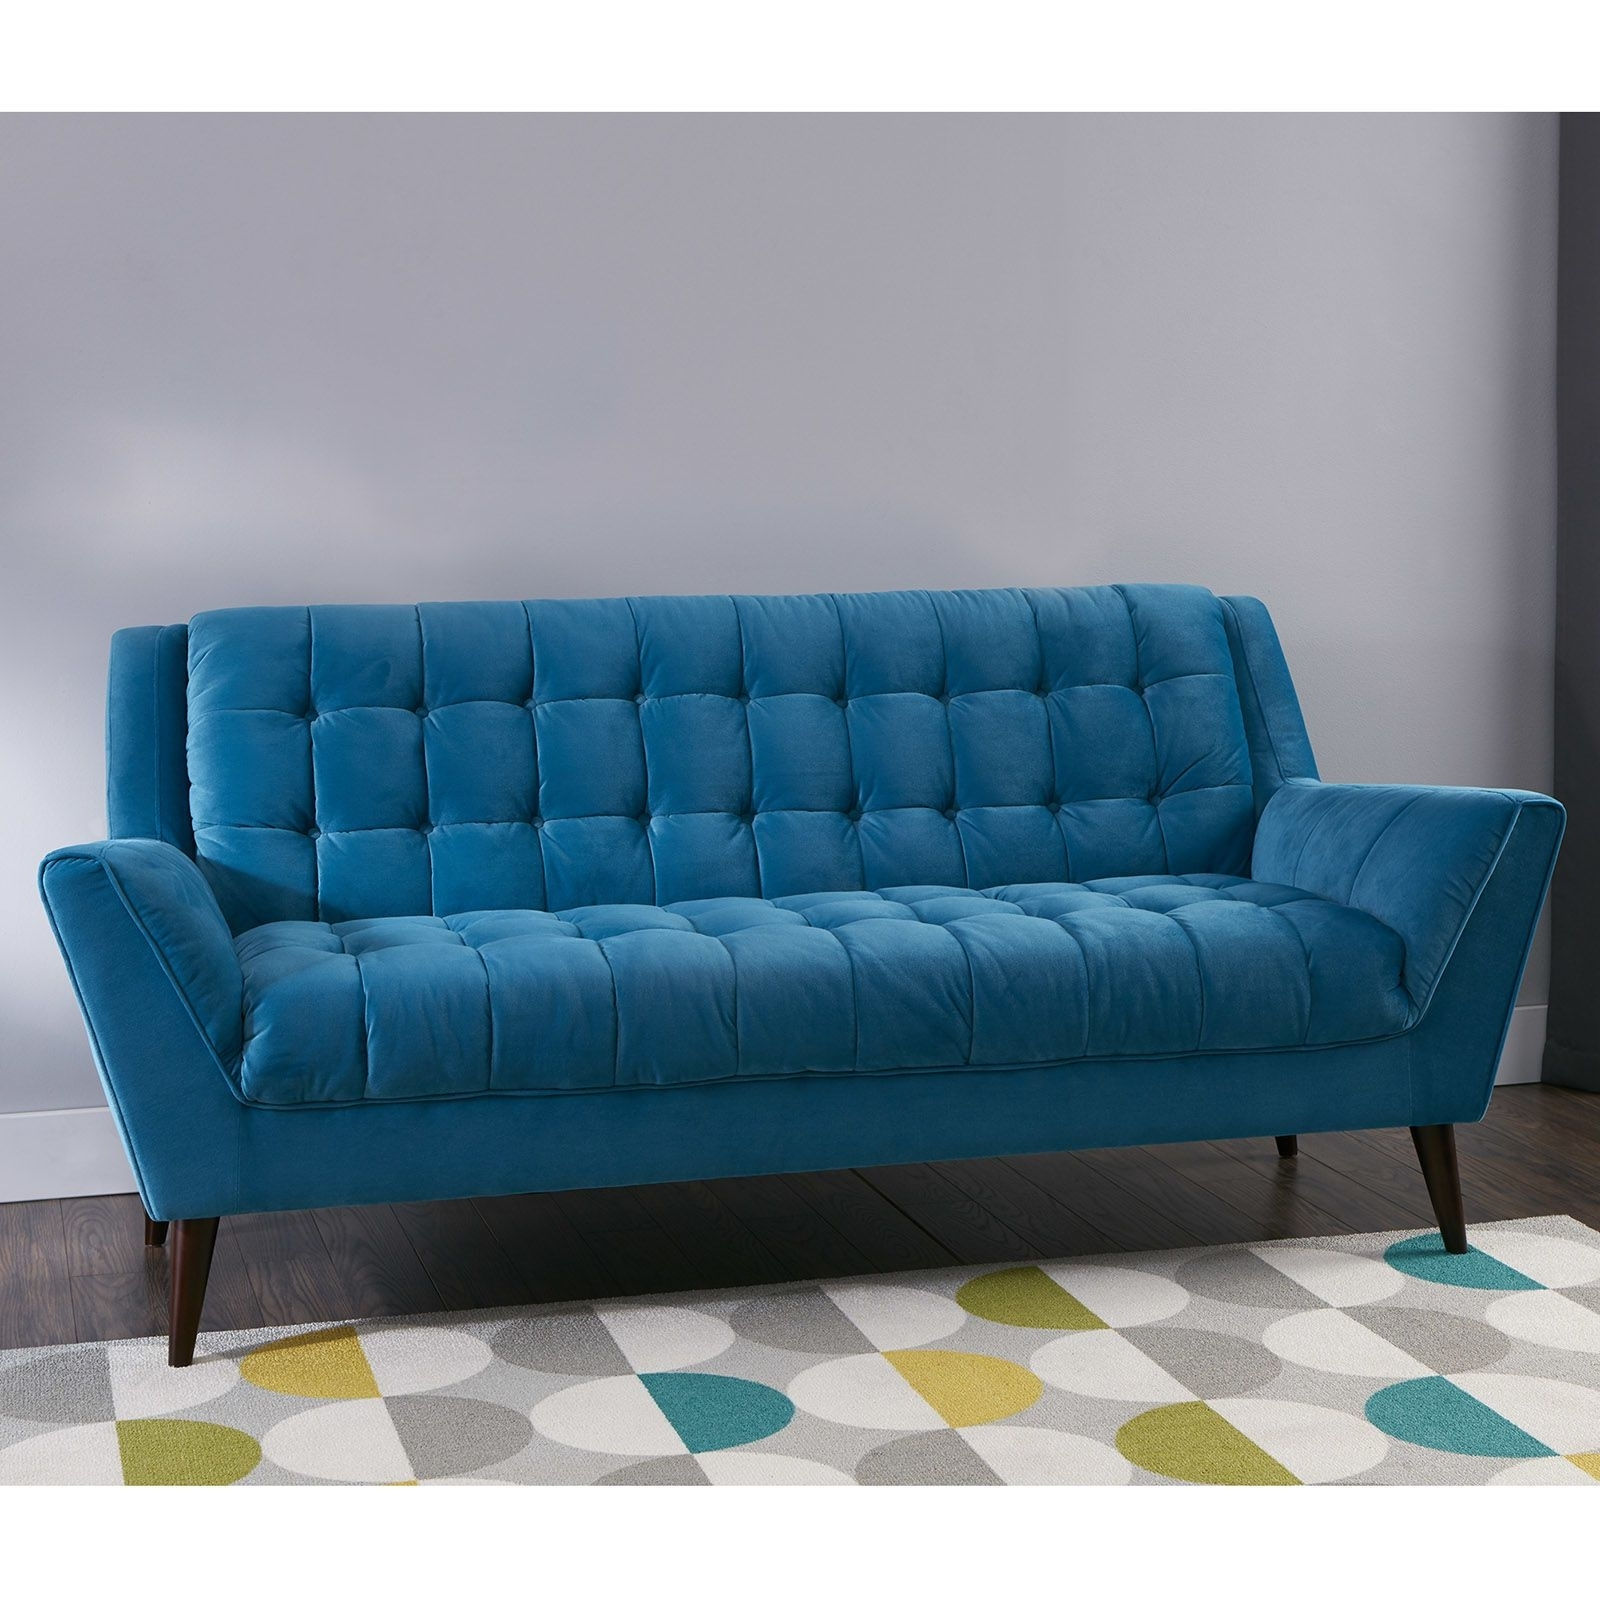 Unbelievable Braxton Midcentury Modern Retro Sofa Teal At Home Of Within Well Known Cheap Retro Sofas (View 10 of 20)